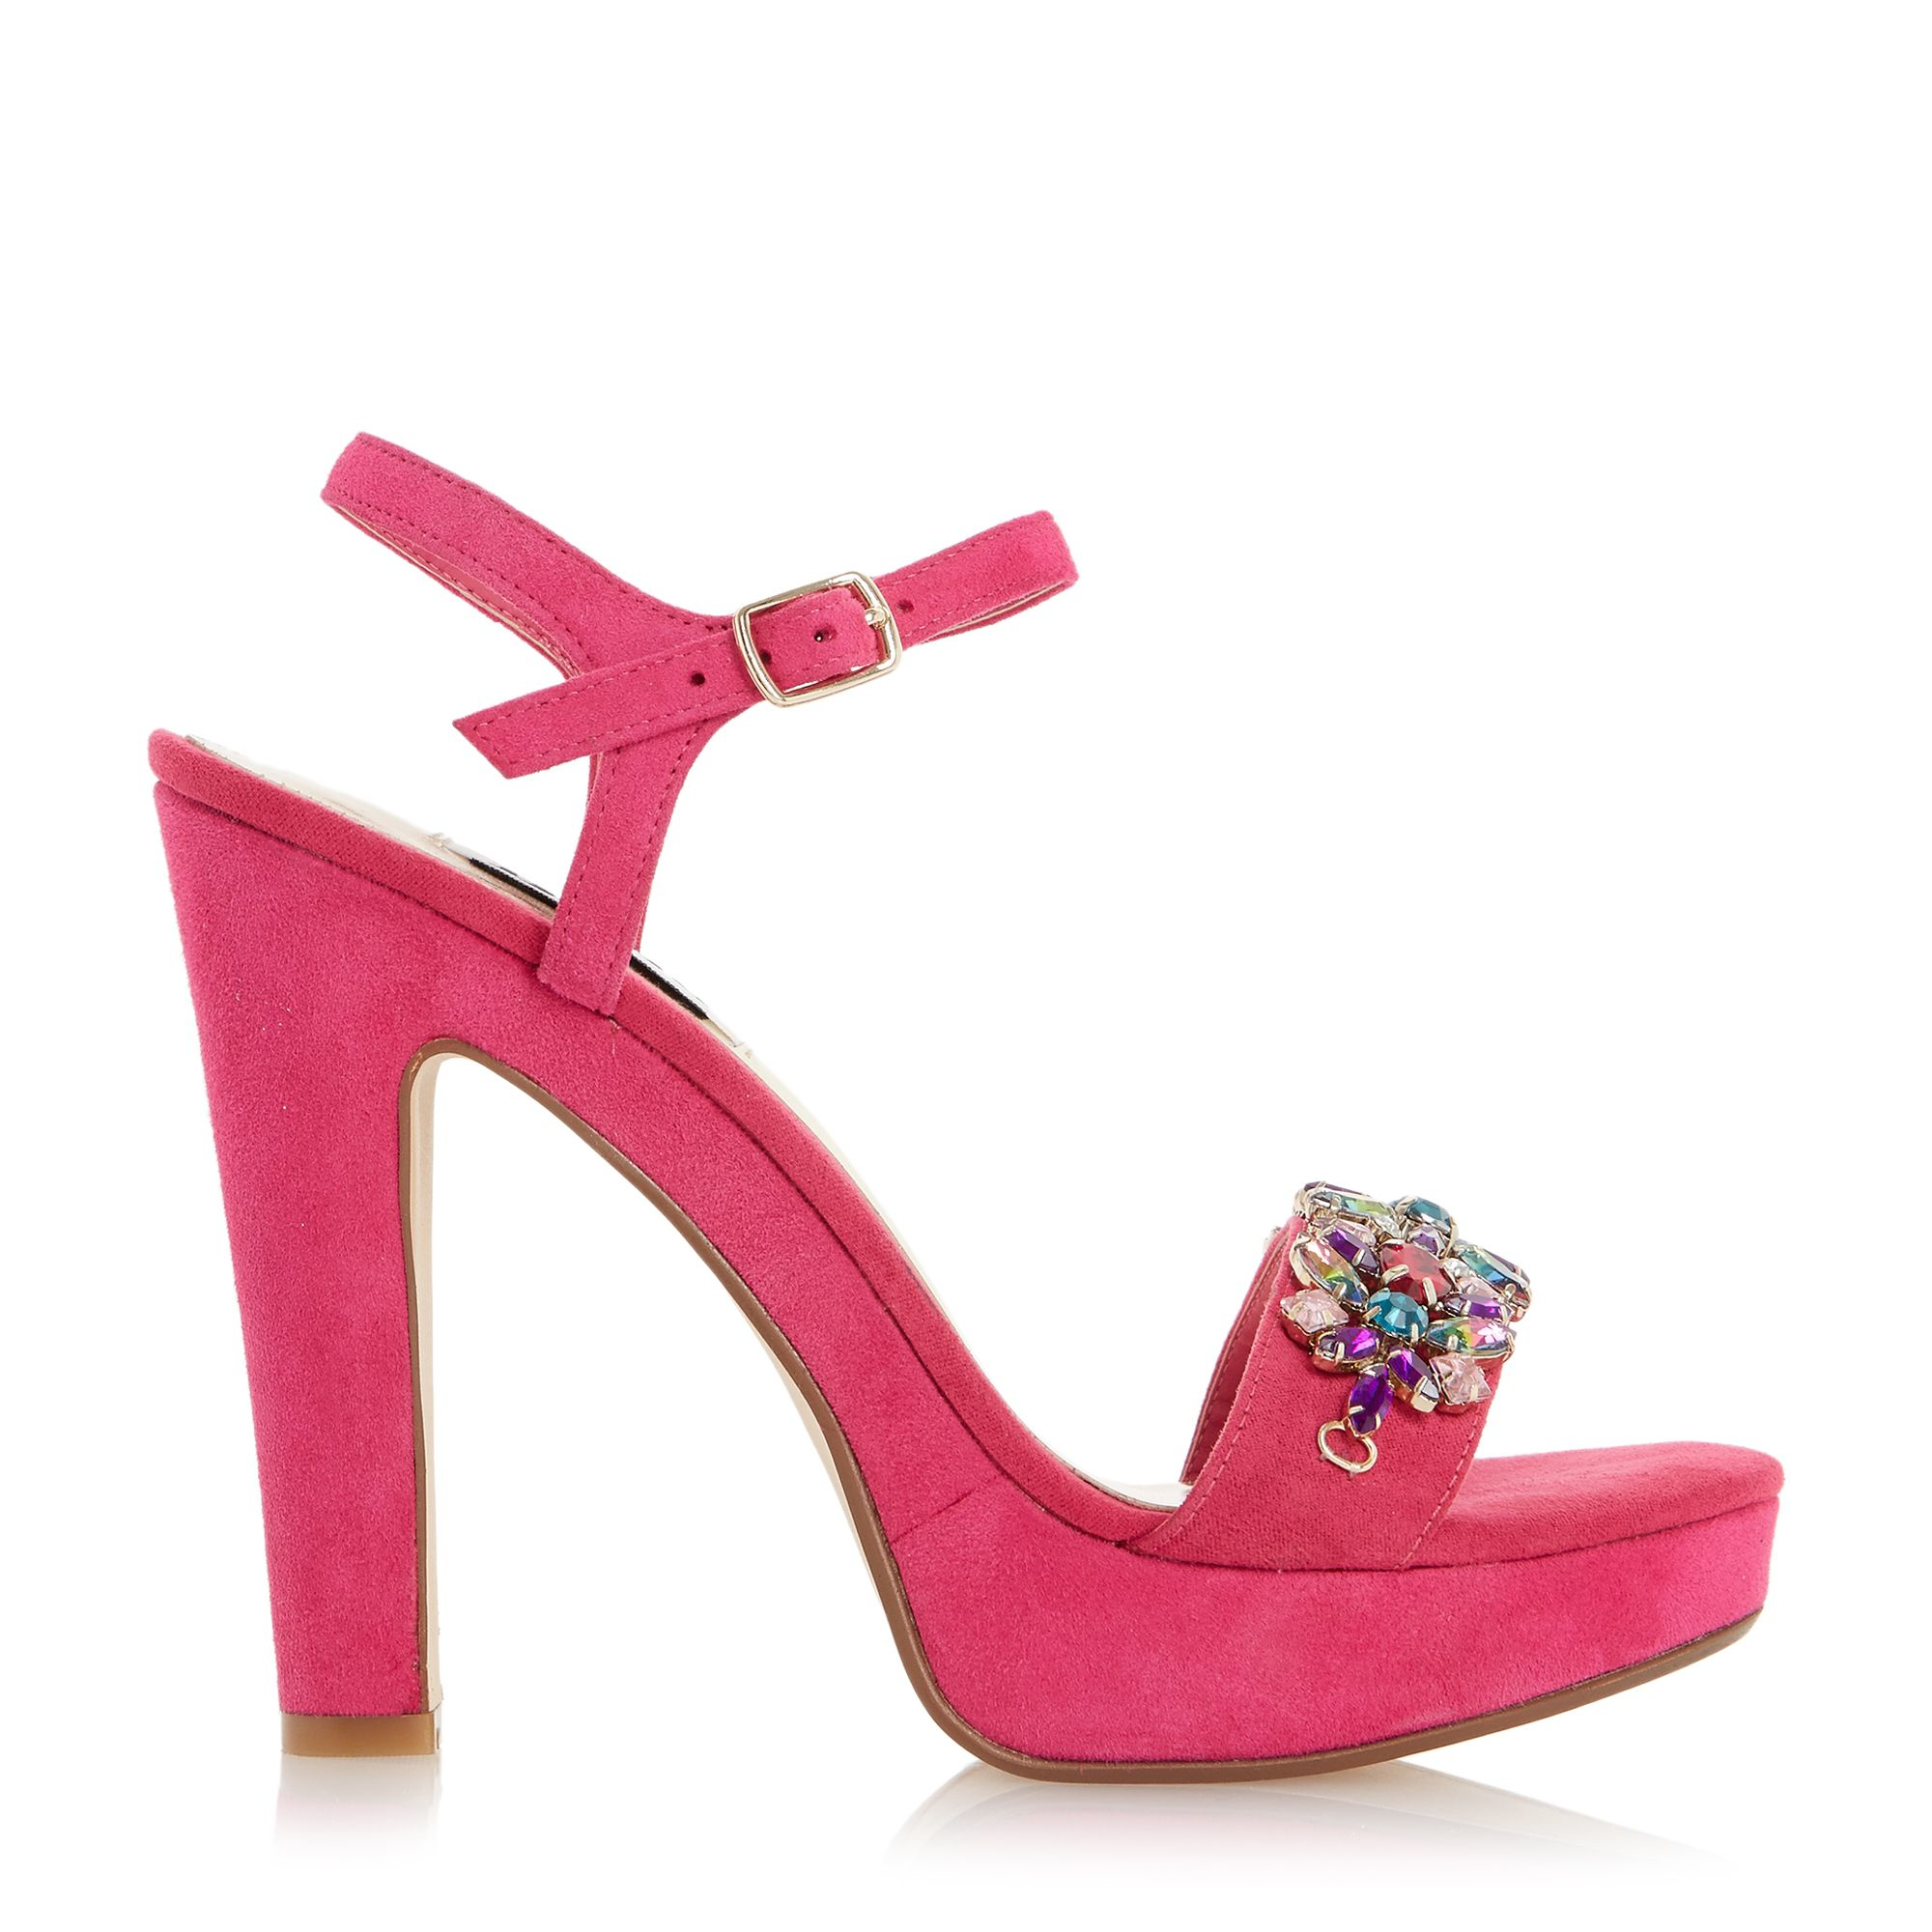 dune meghan suede two part trim sandals in pink lyst